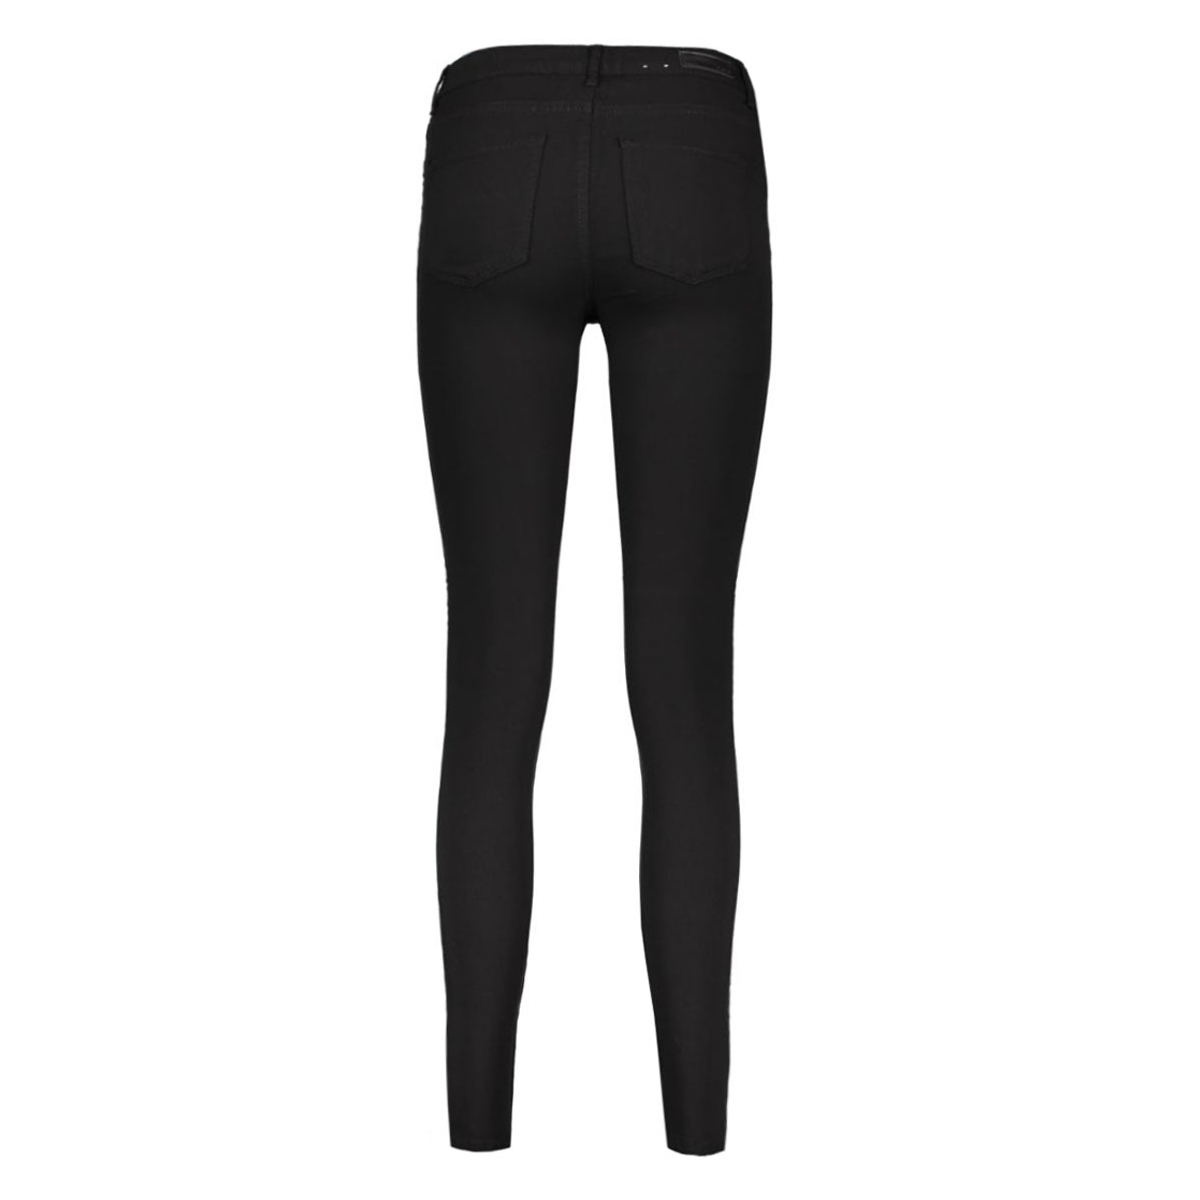 pcskin wear jeggings  black/noos 17079908 pieces broek black